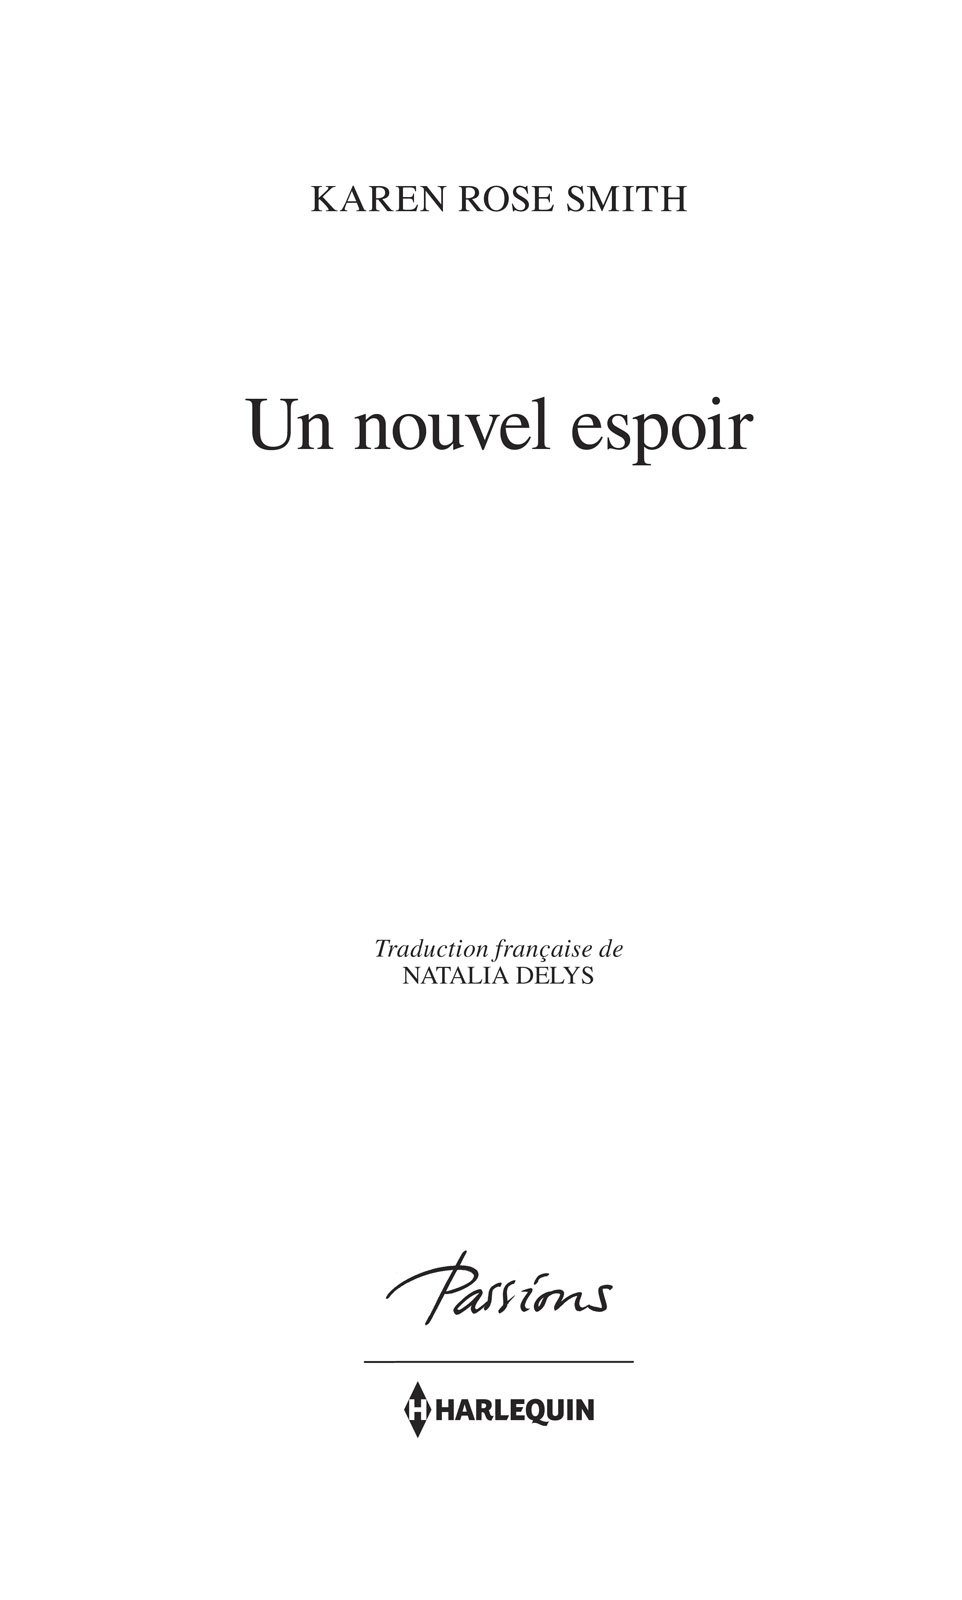 Page de titre : Karen Rose Smith, Un nouvel espoir, Harlequin